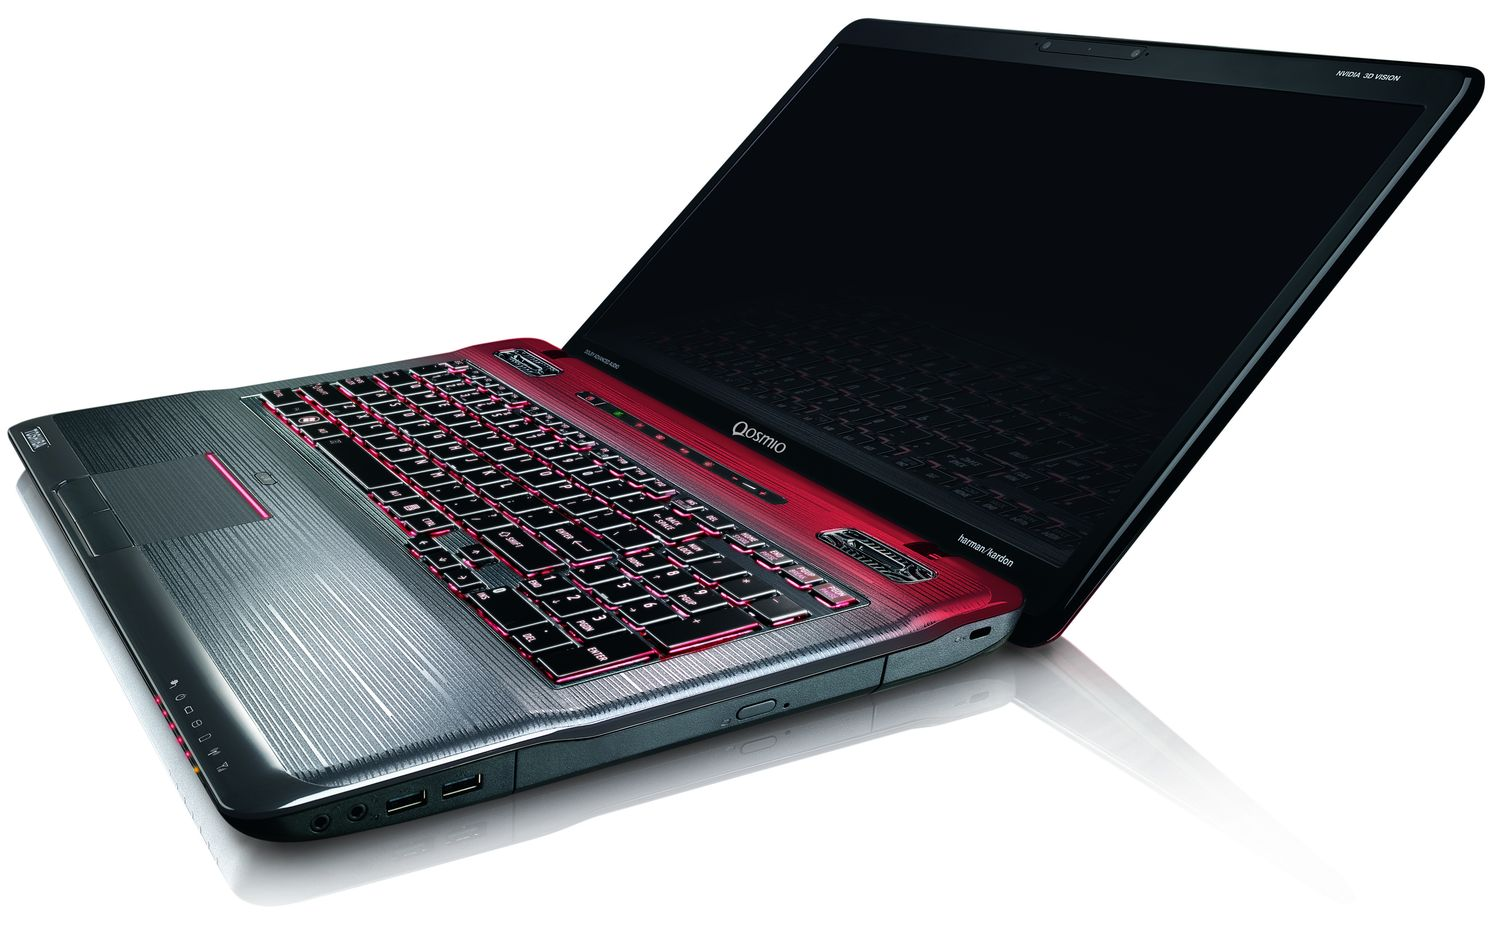 World's Most Expensive Laptops in The Year 2013